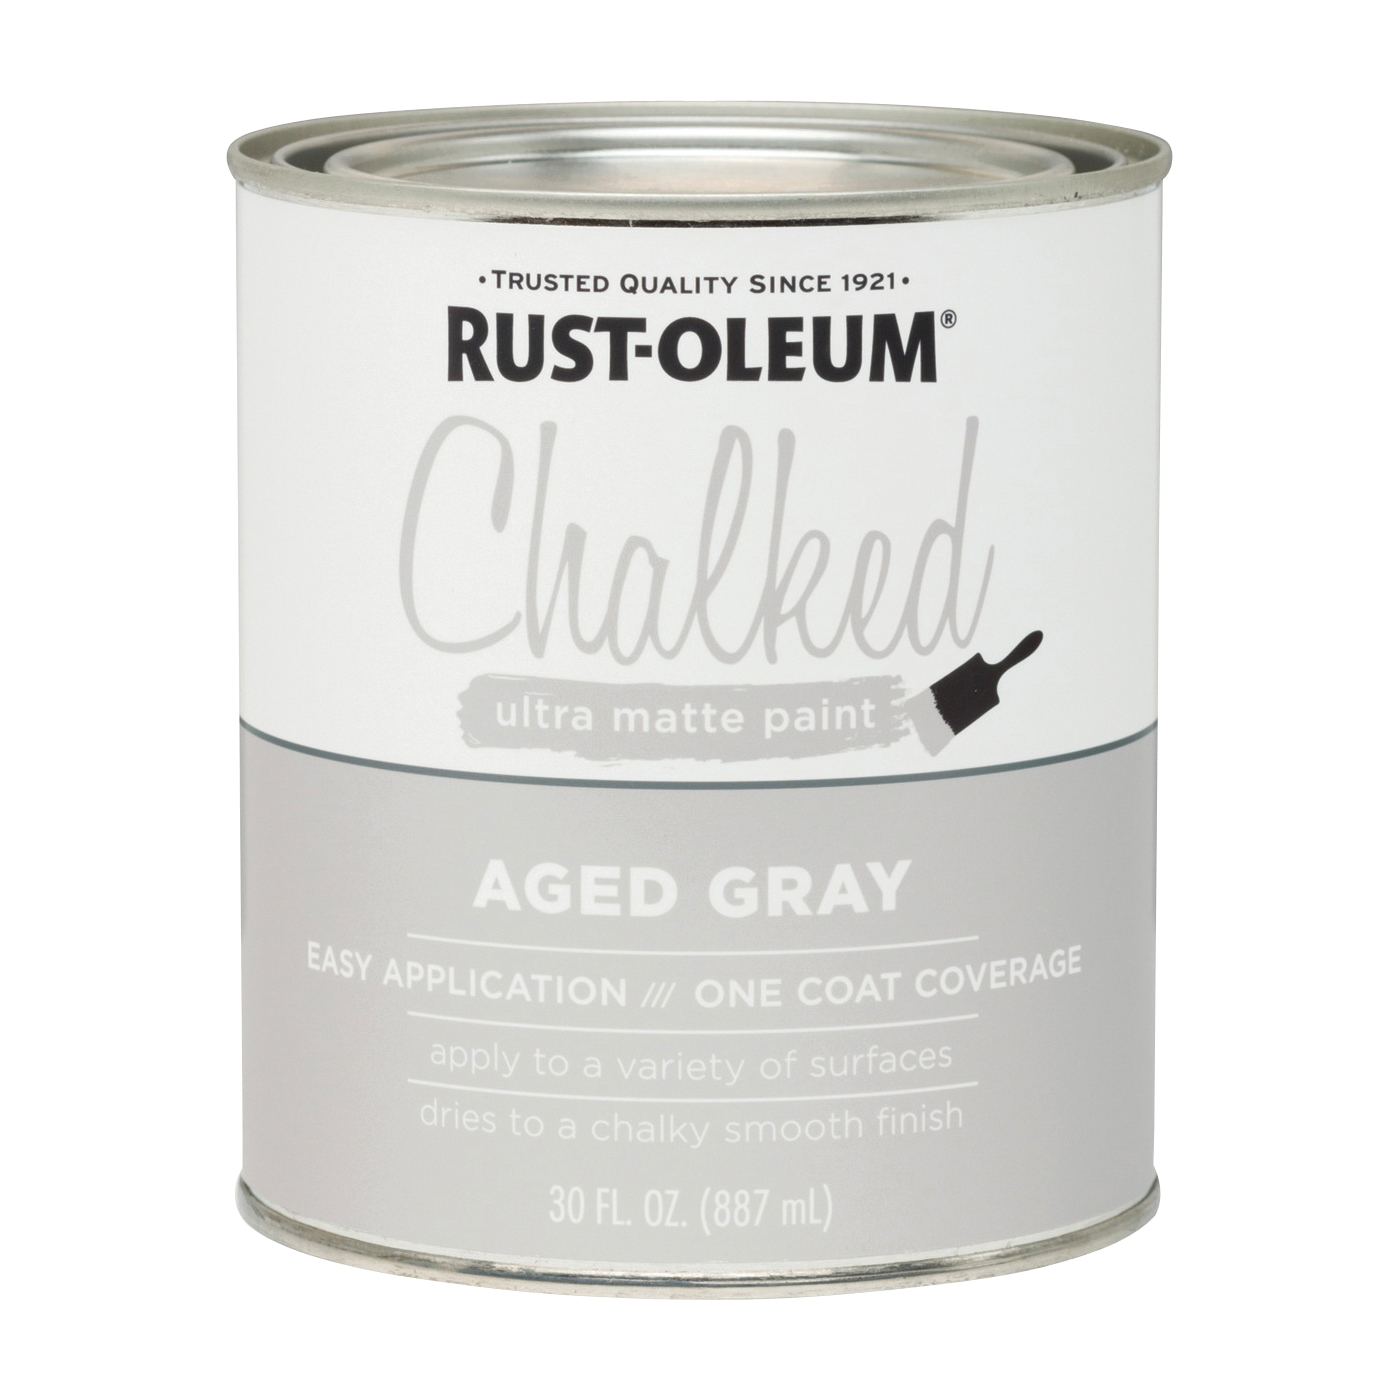 Picture of RUST-OLEUM Chalked 285143 Chalked Paint, Ultra Matte, Aged Gray, 30 oz, Pint